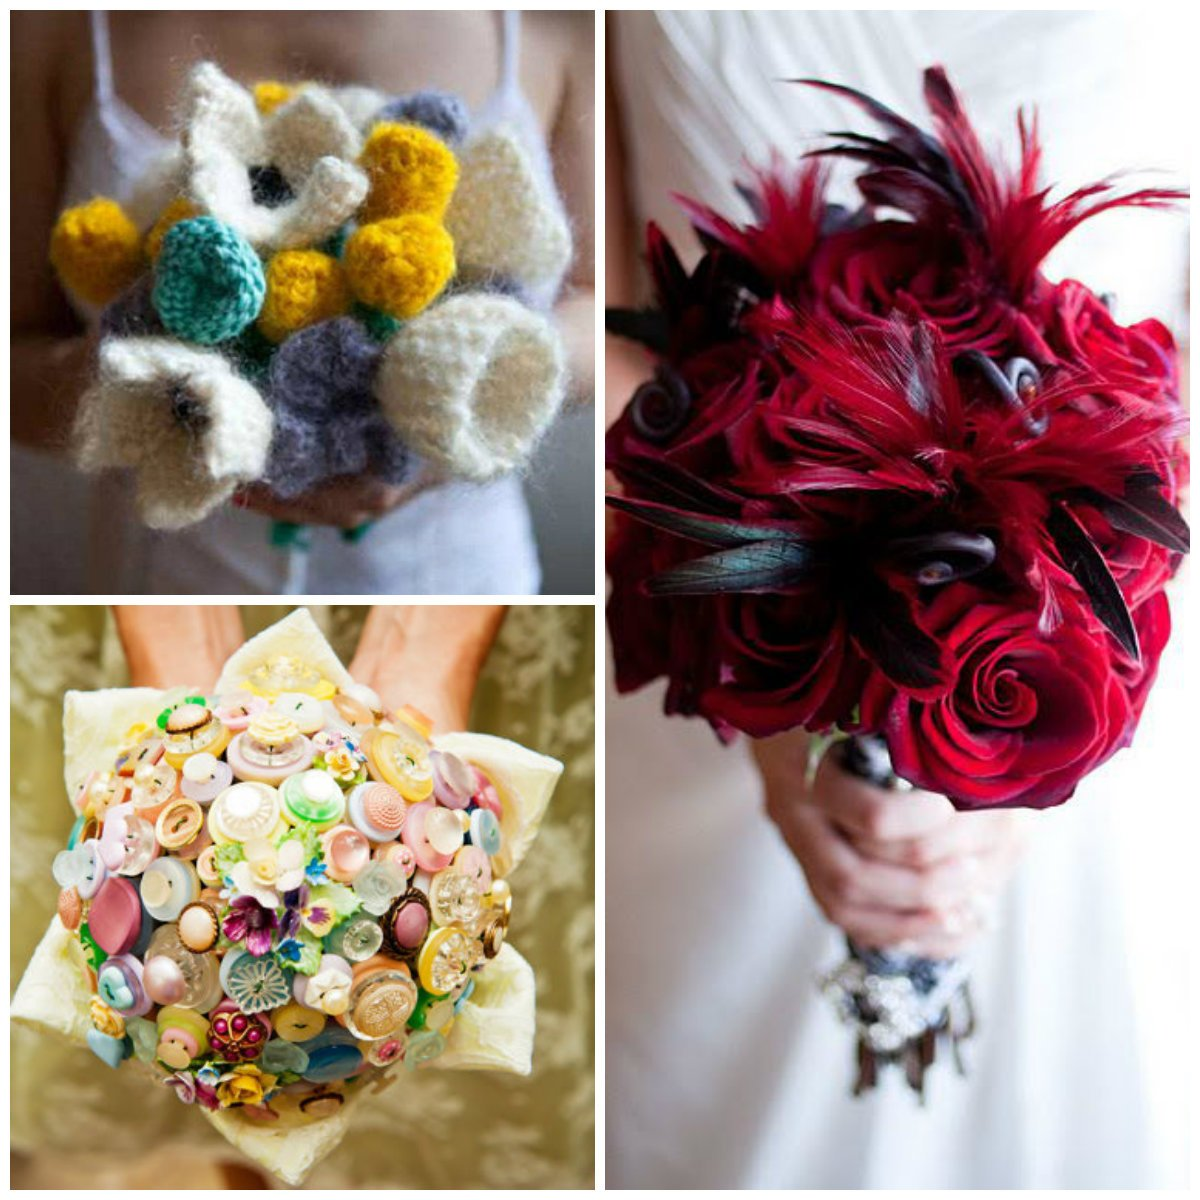 Bouquets with buttons, knitted flowers and plumage